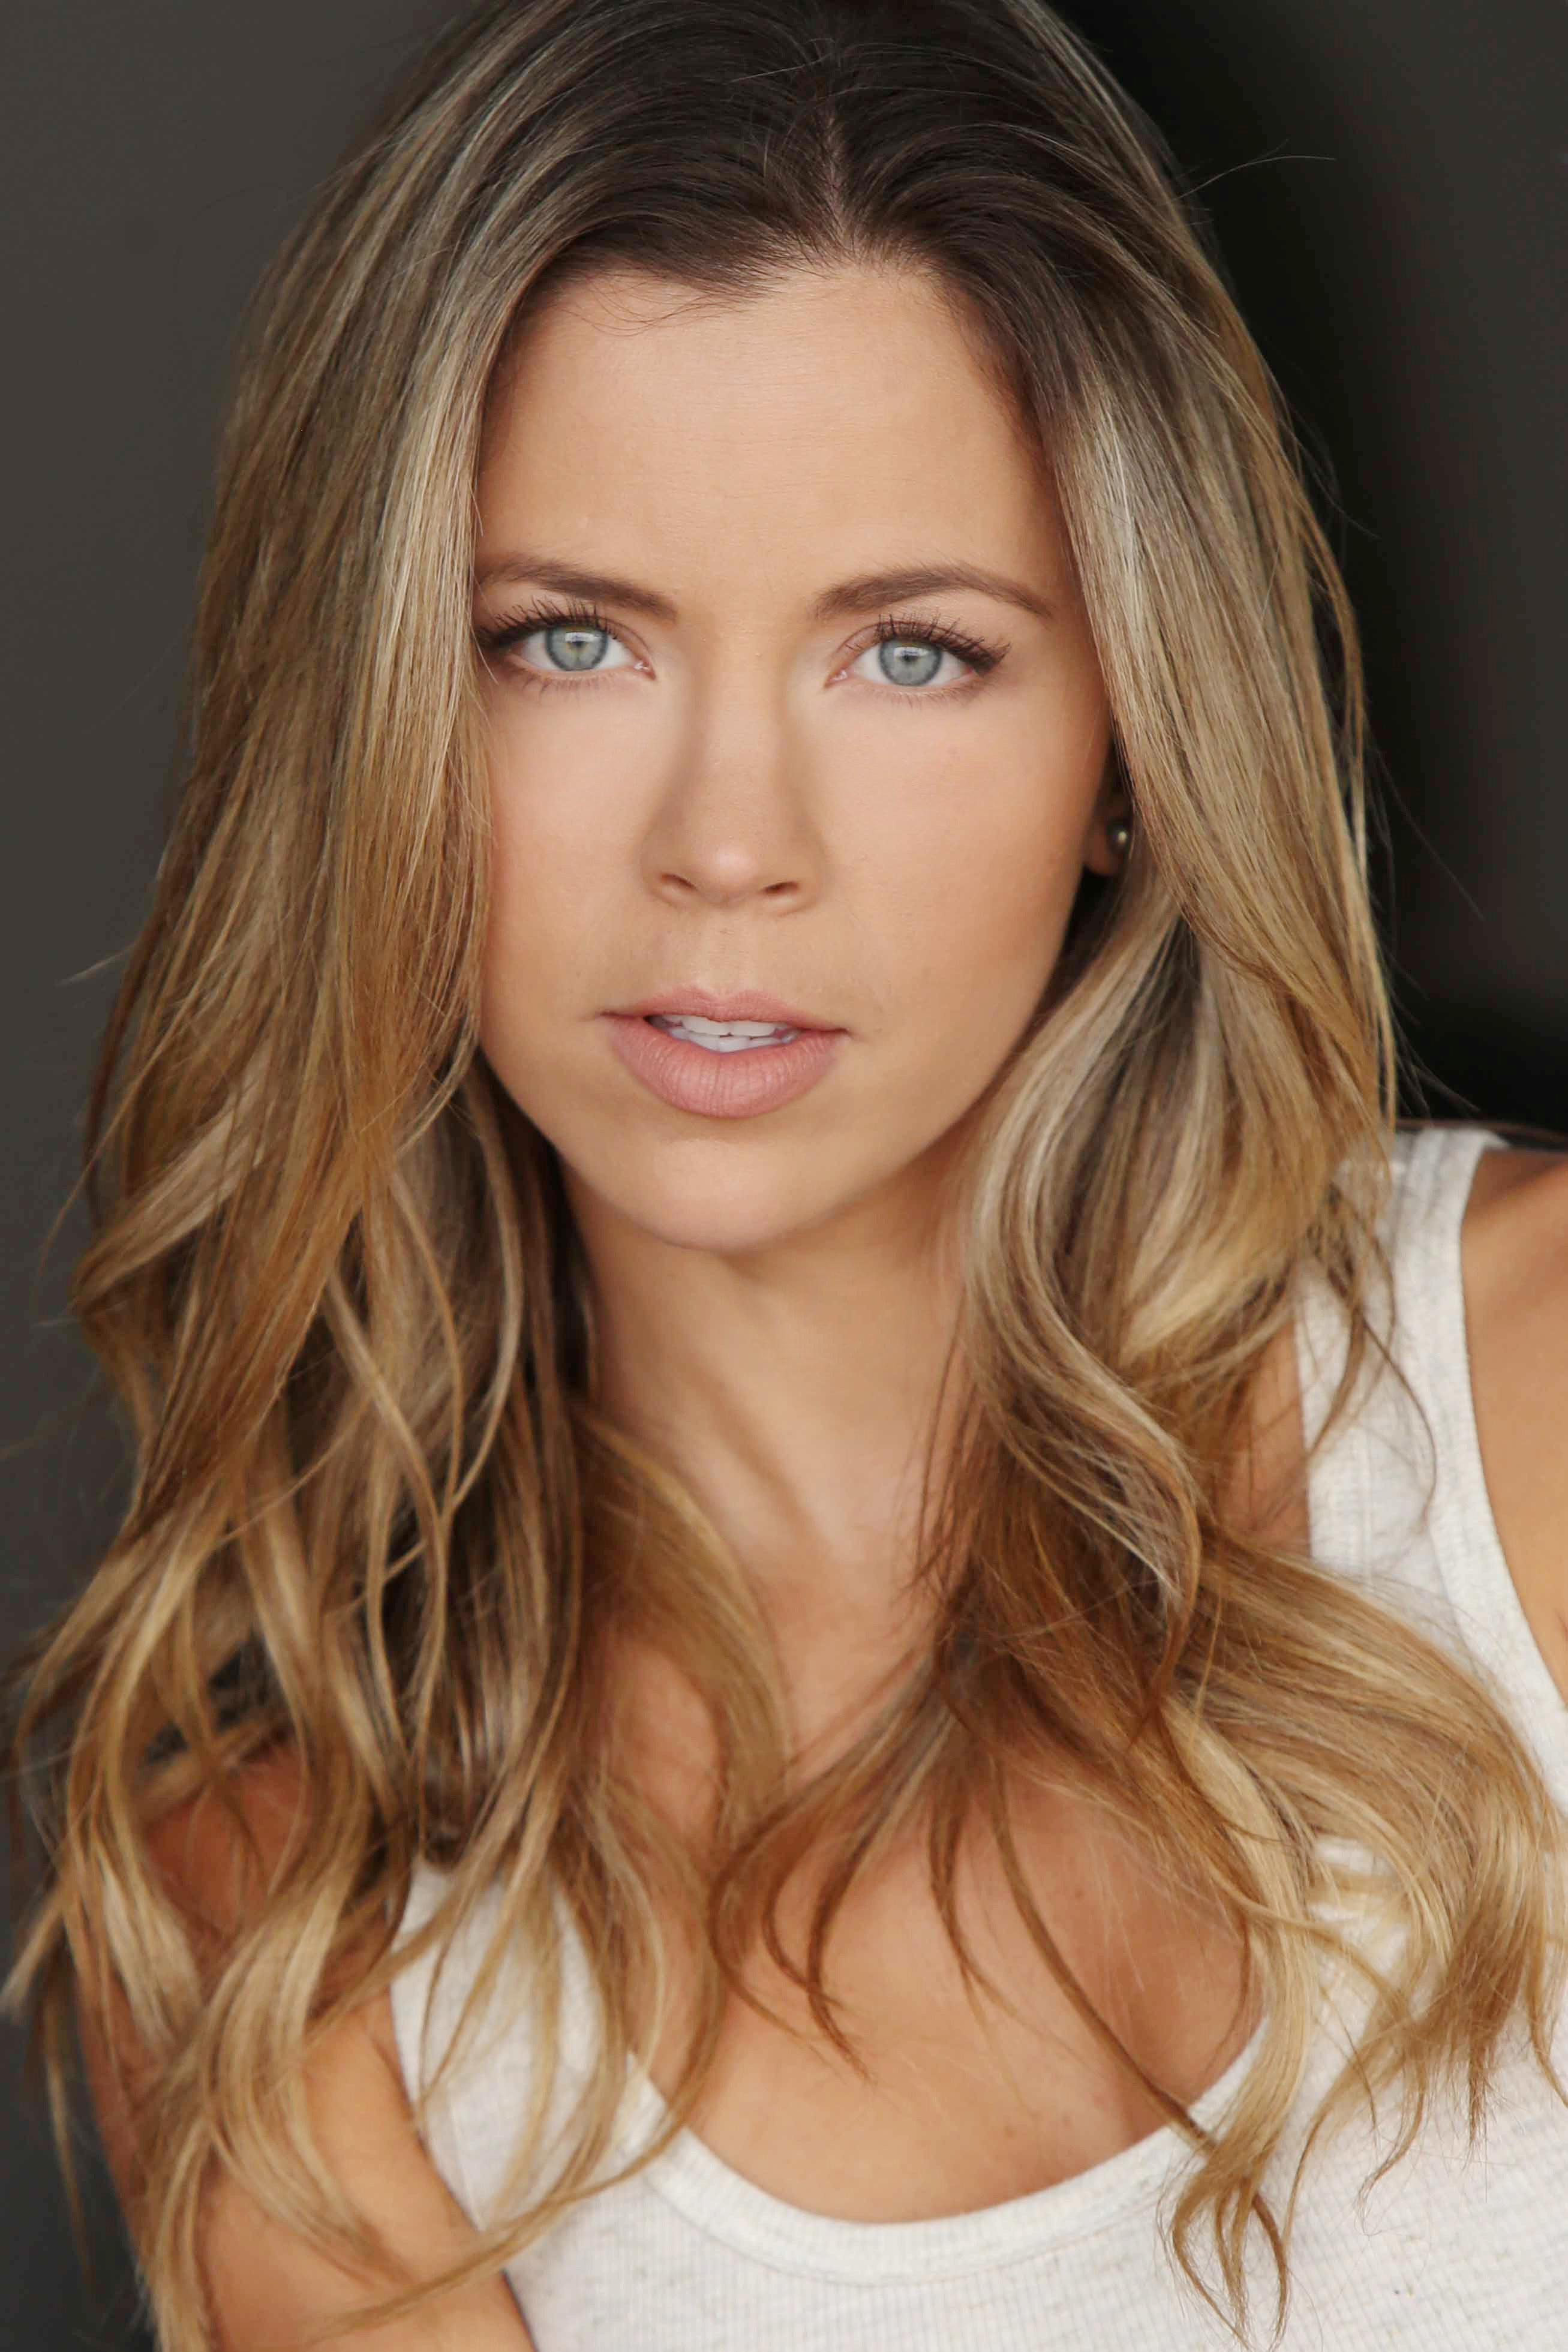 Ximena Duque Ximena Duque Related K...